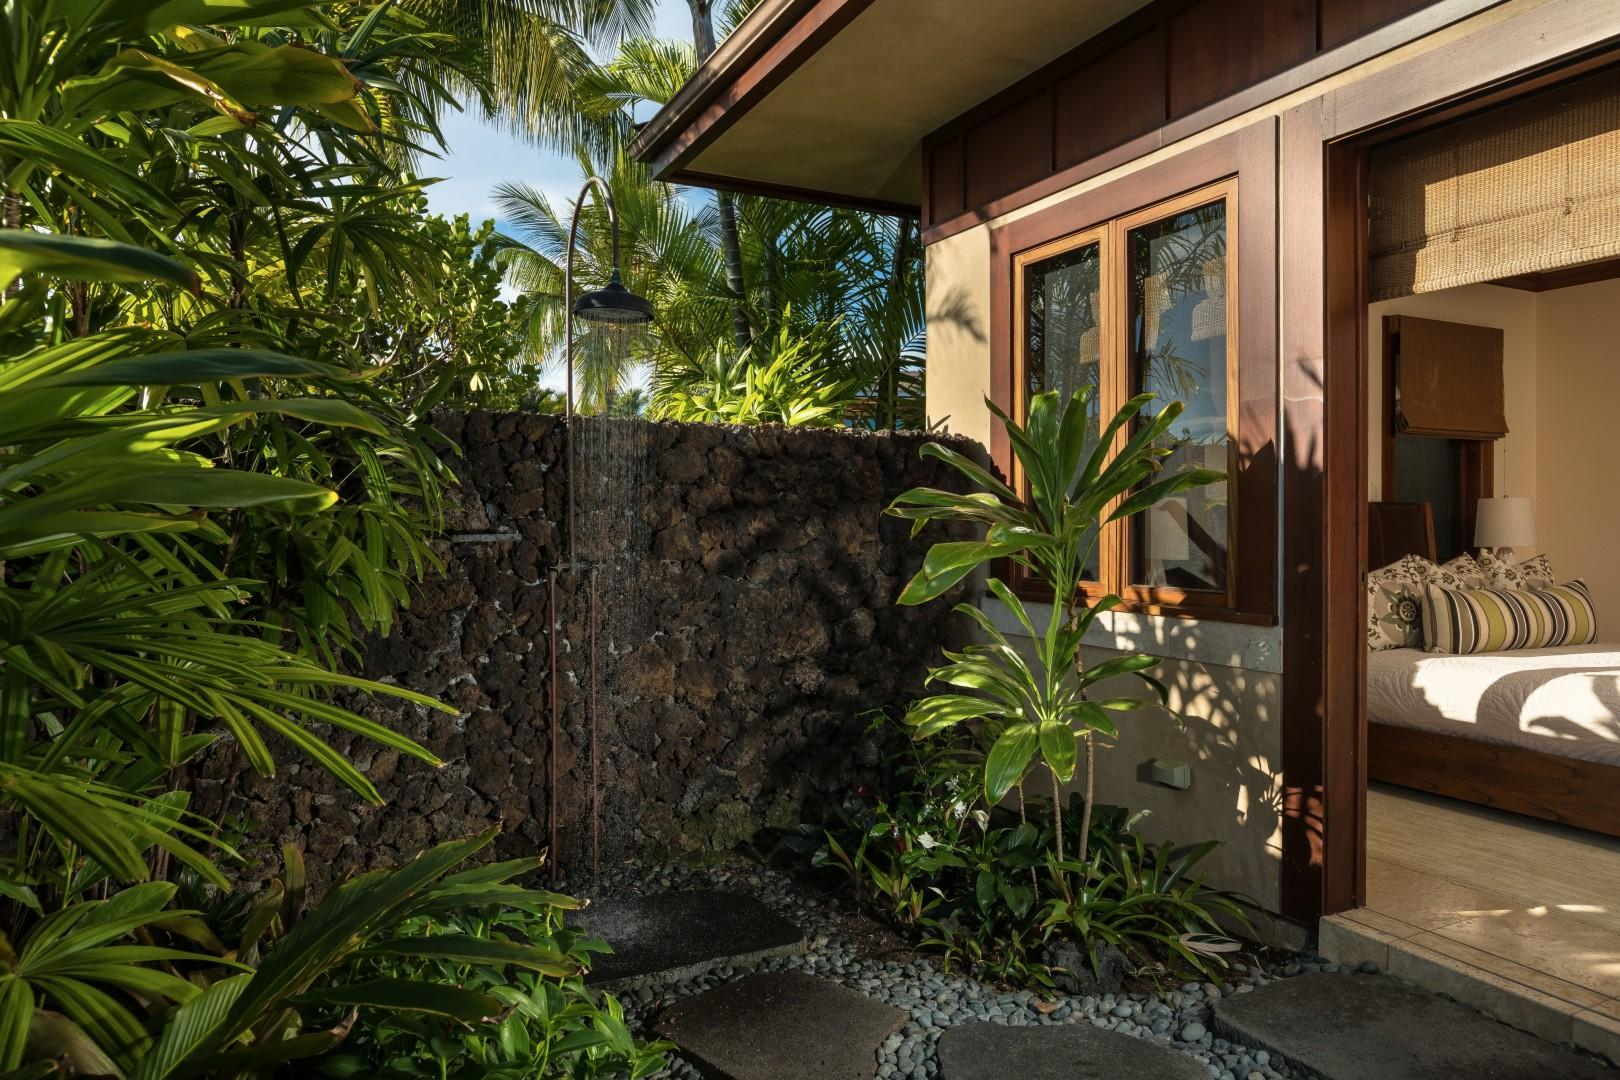 Outdoor tropical shower garden - each bedroom in this estate home has its own!